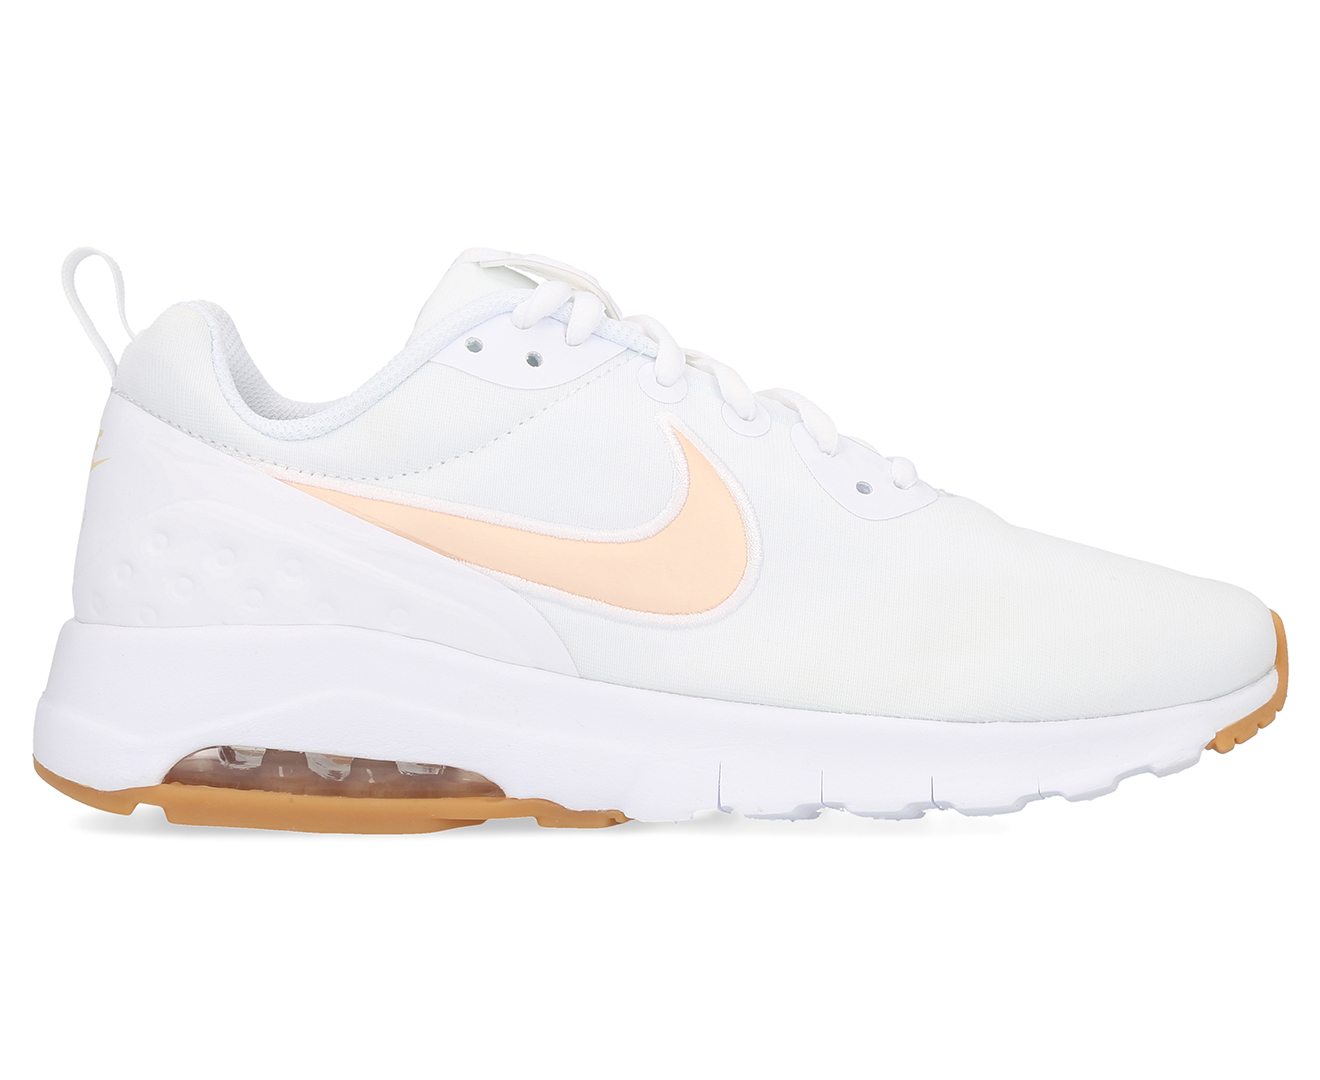 Nike Nike Air Max Motion LW SE Women's Sneakers, Size: 10, Oxford from Kohl's People  People